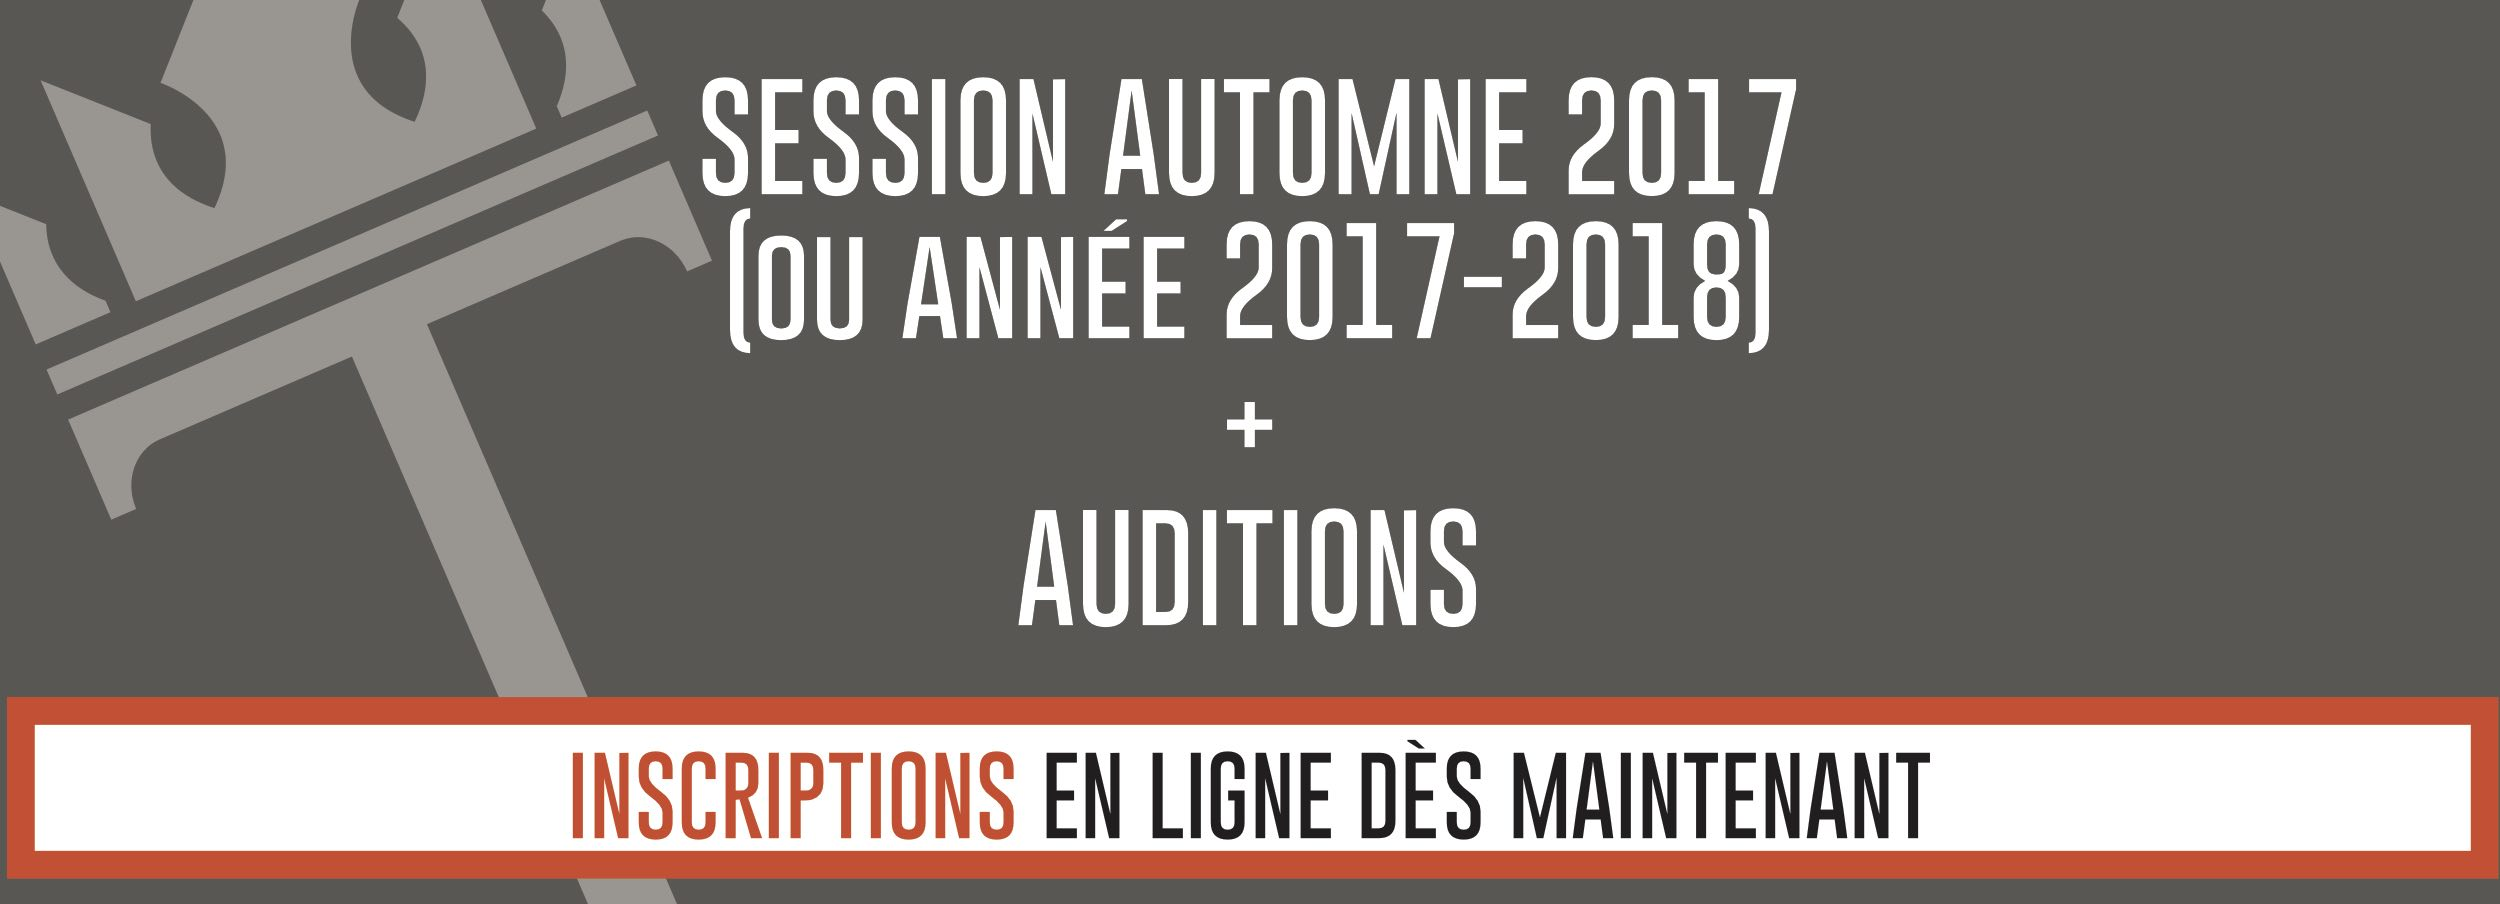 Inscriptions-AUT17-auditions-slider